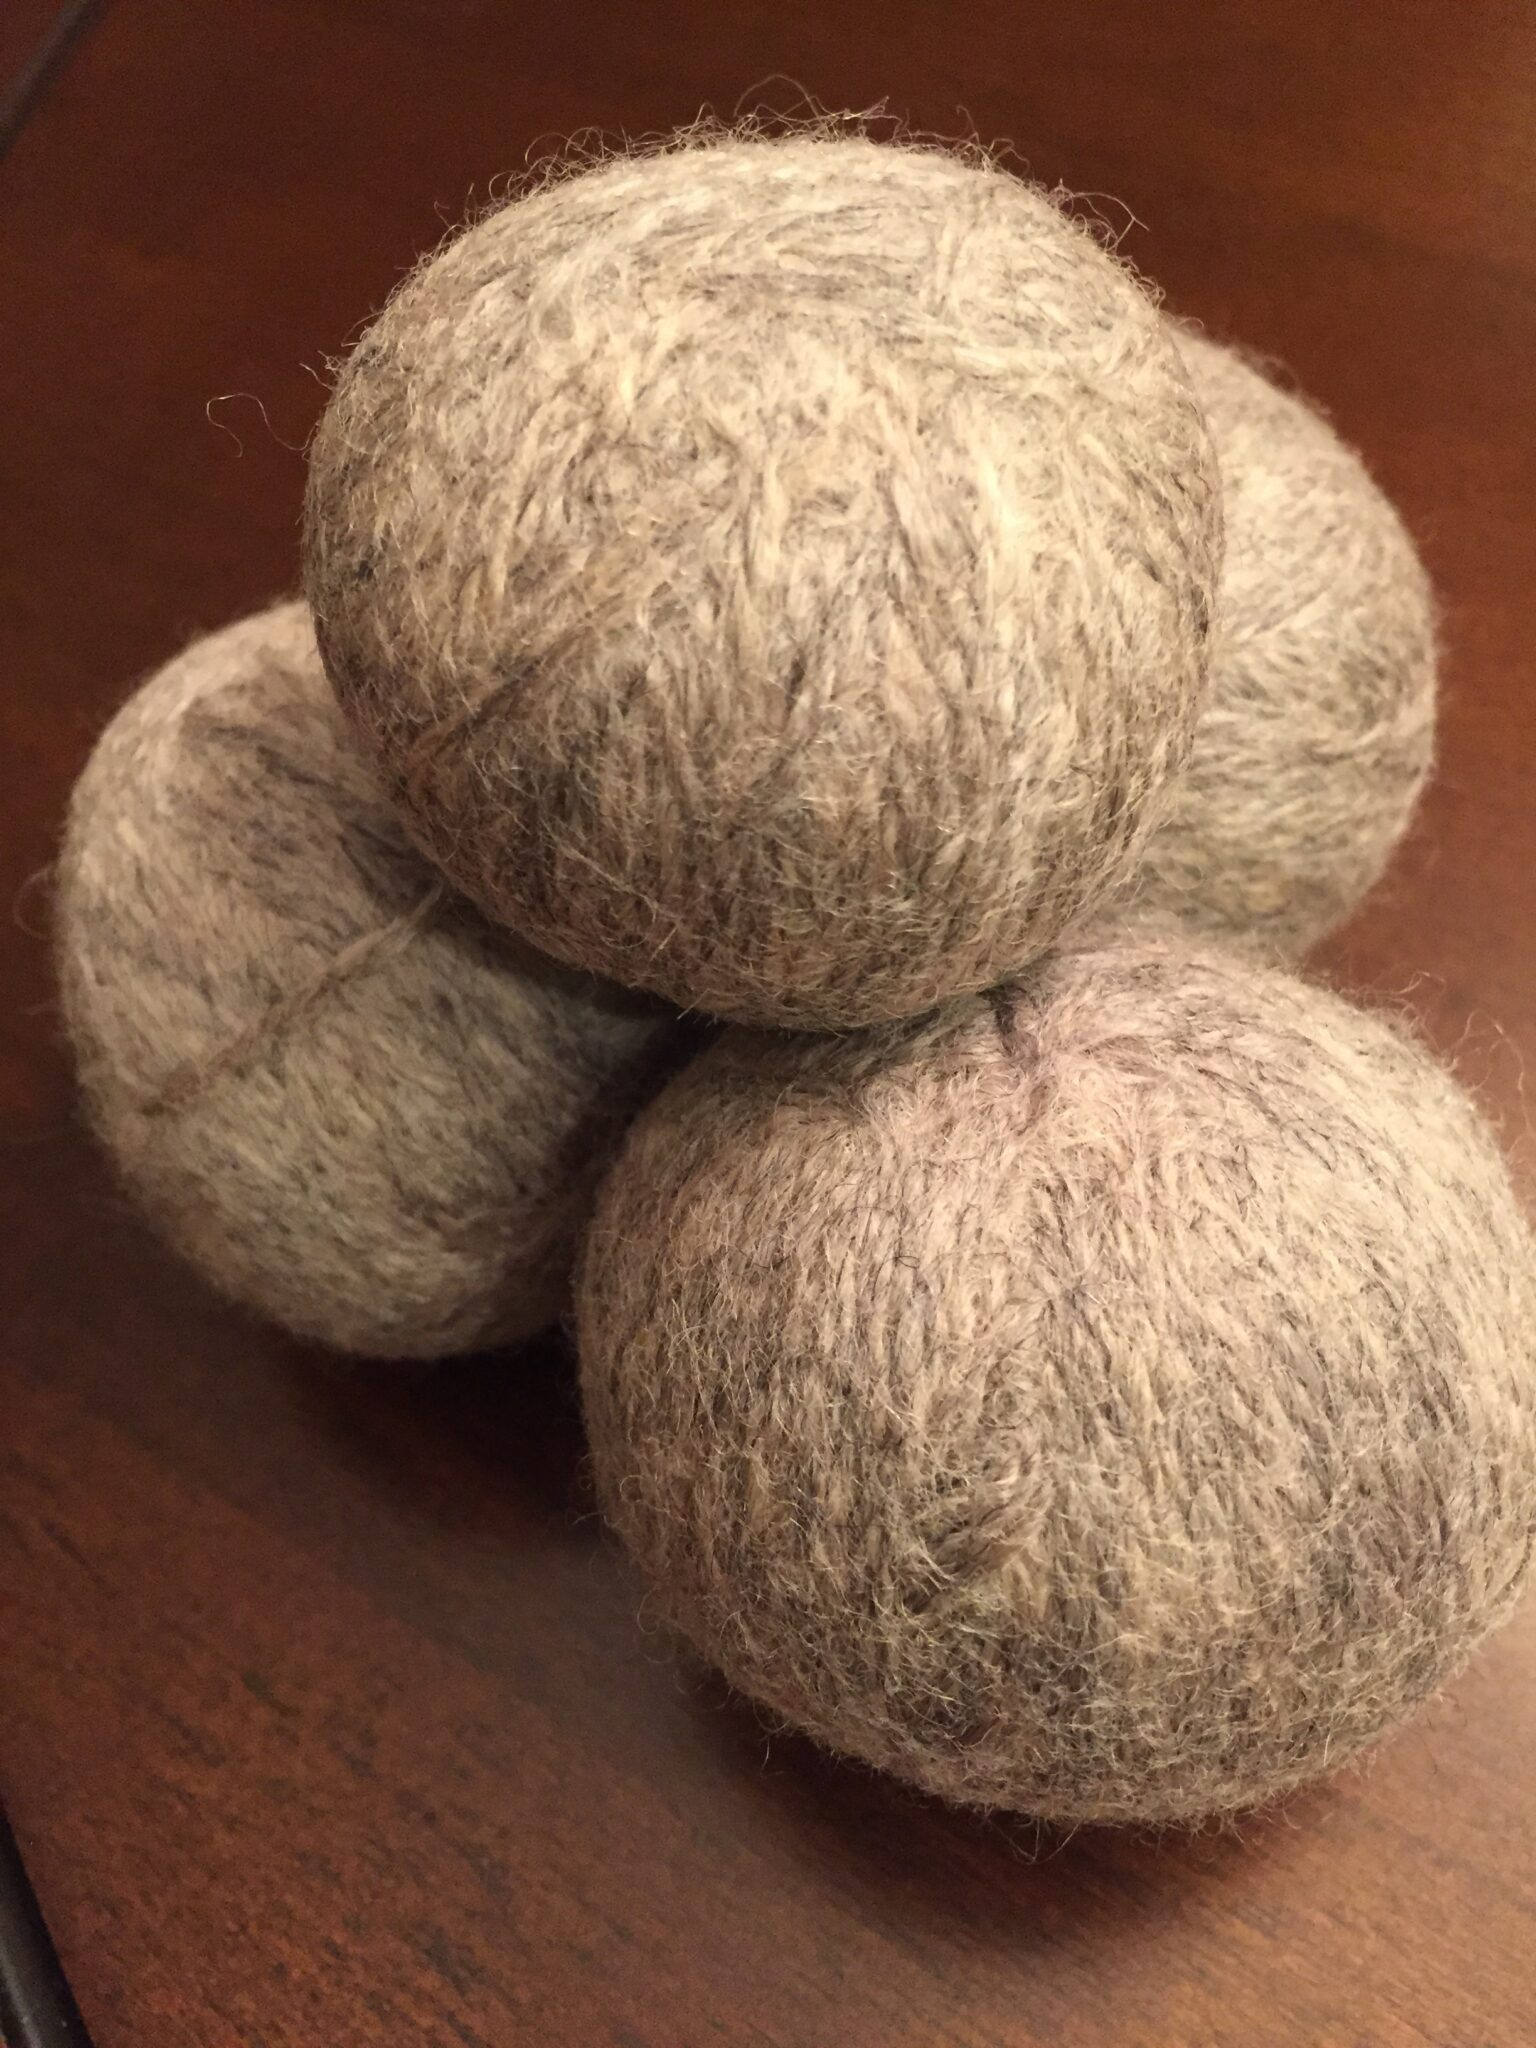 Baa Baa Black Sheep, Have You Any Wool…. Balls?